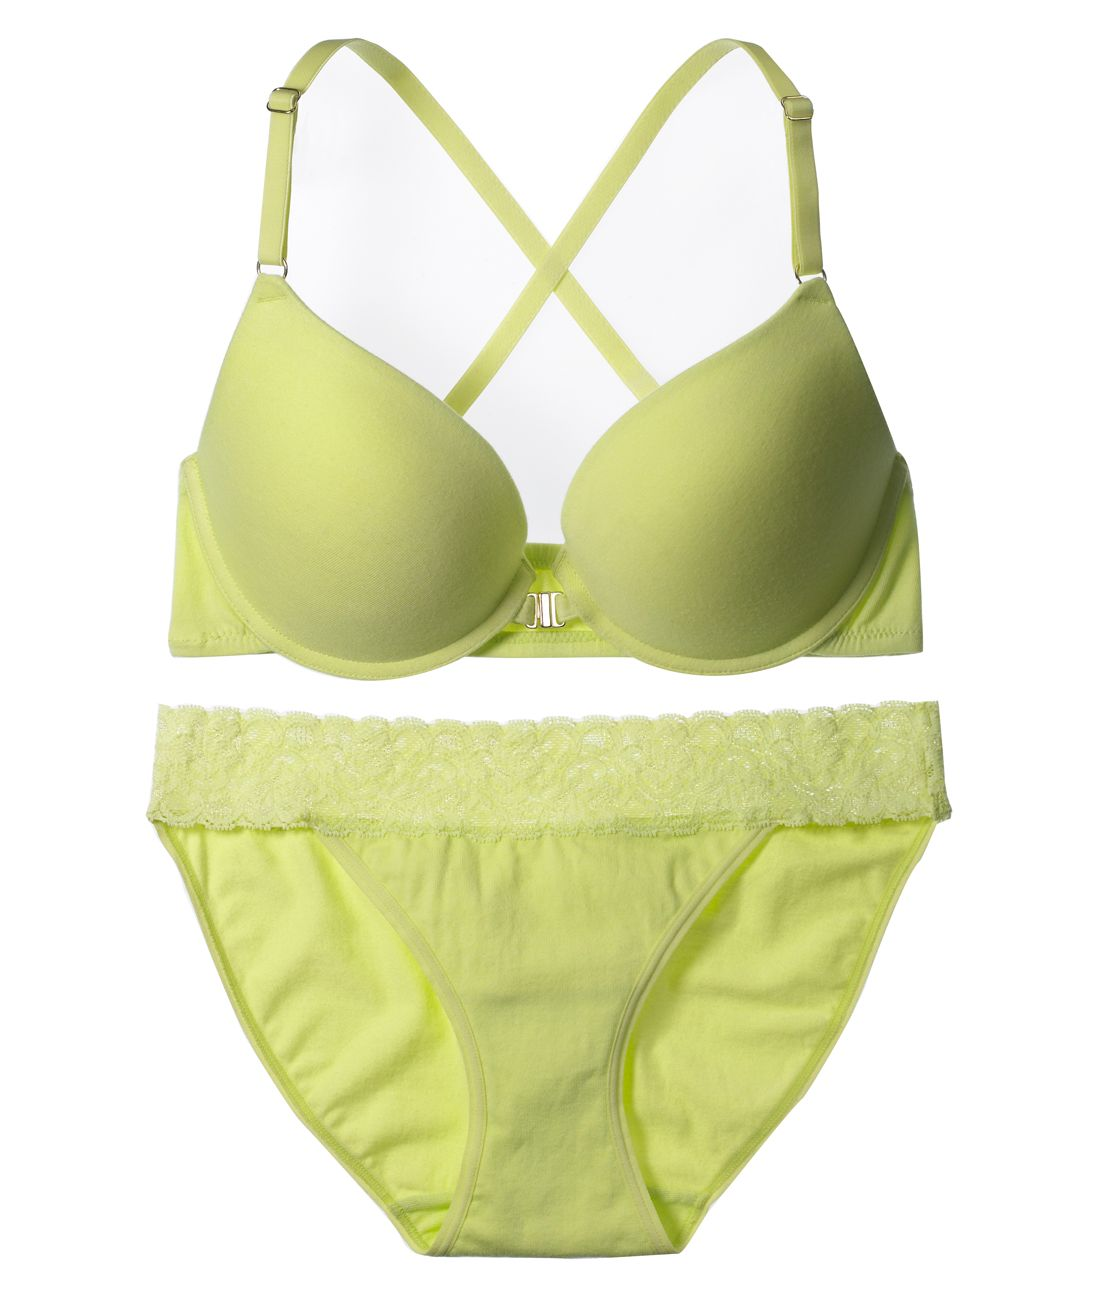 YM' Simple Racerback Bra Set (Bra and Panty)